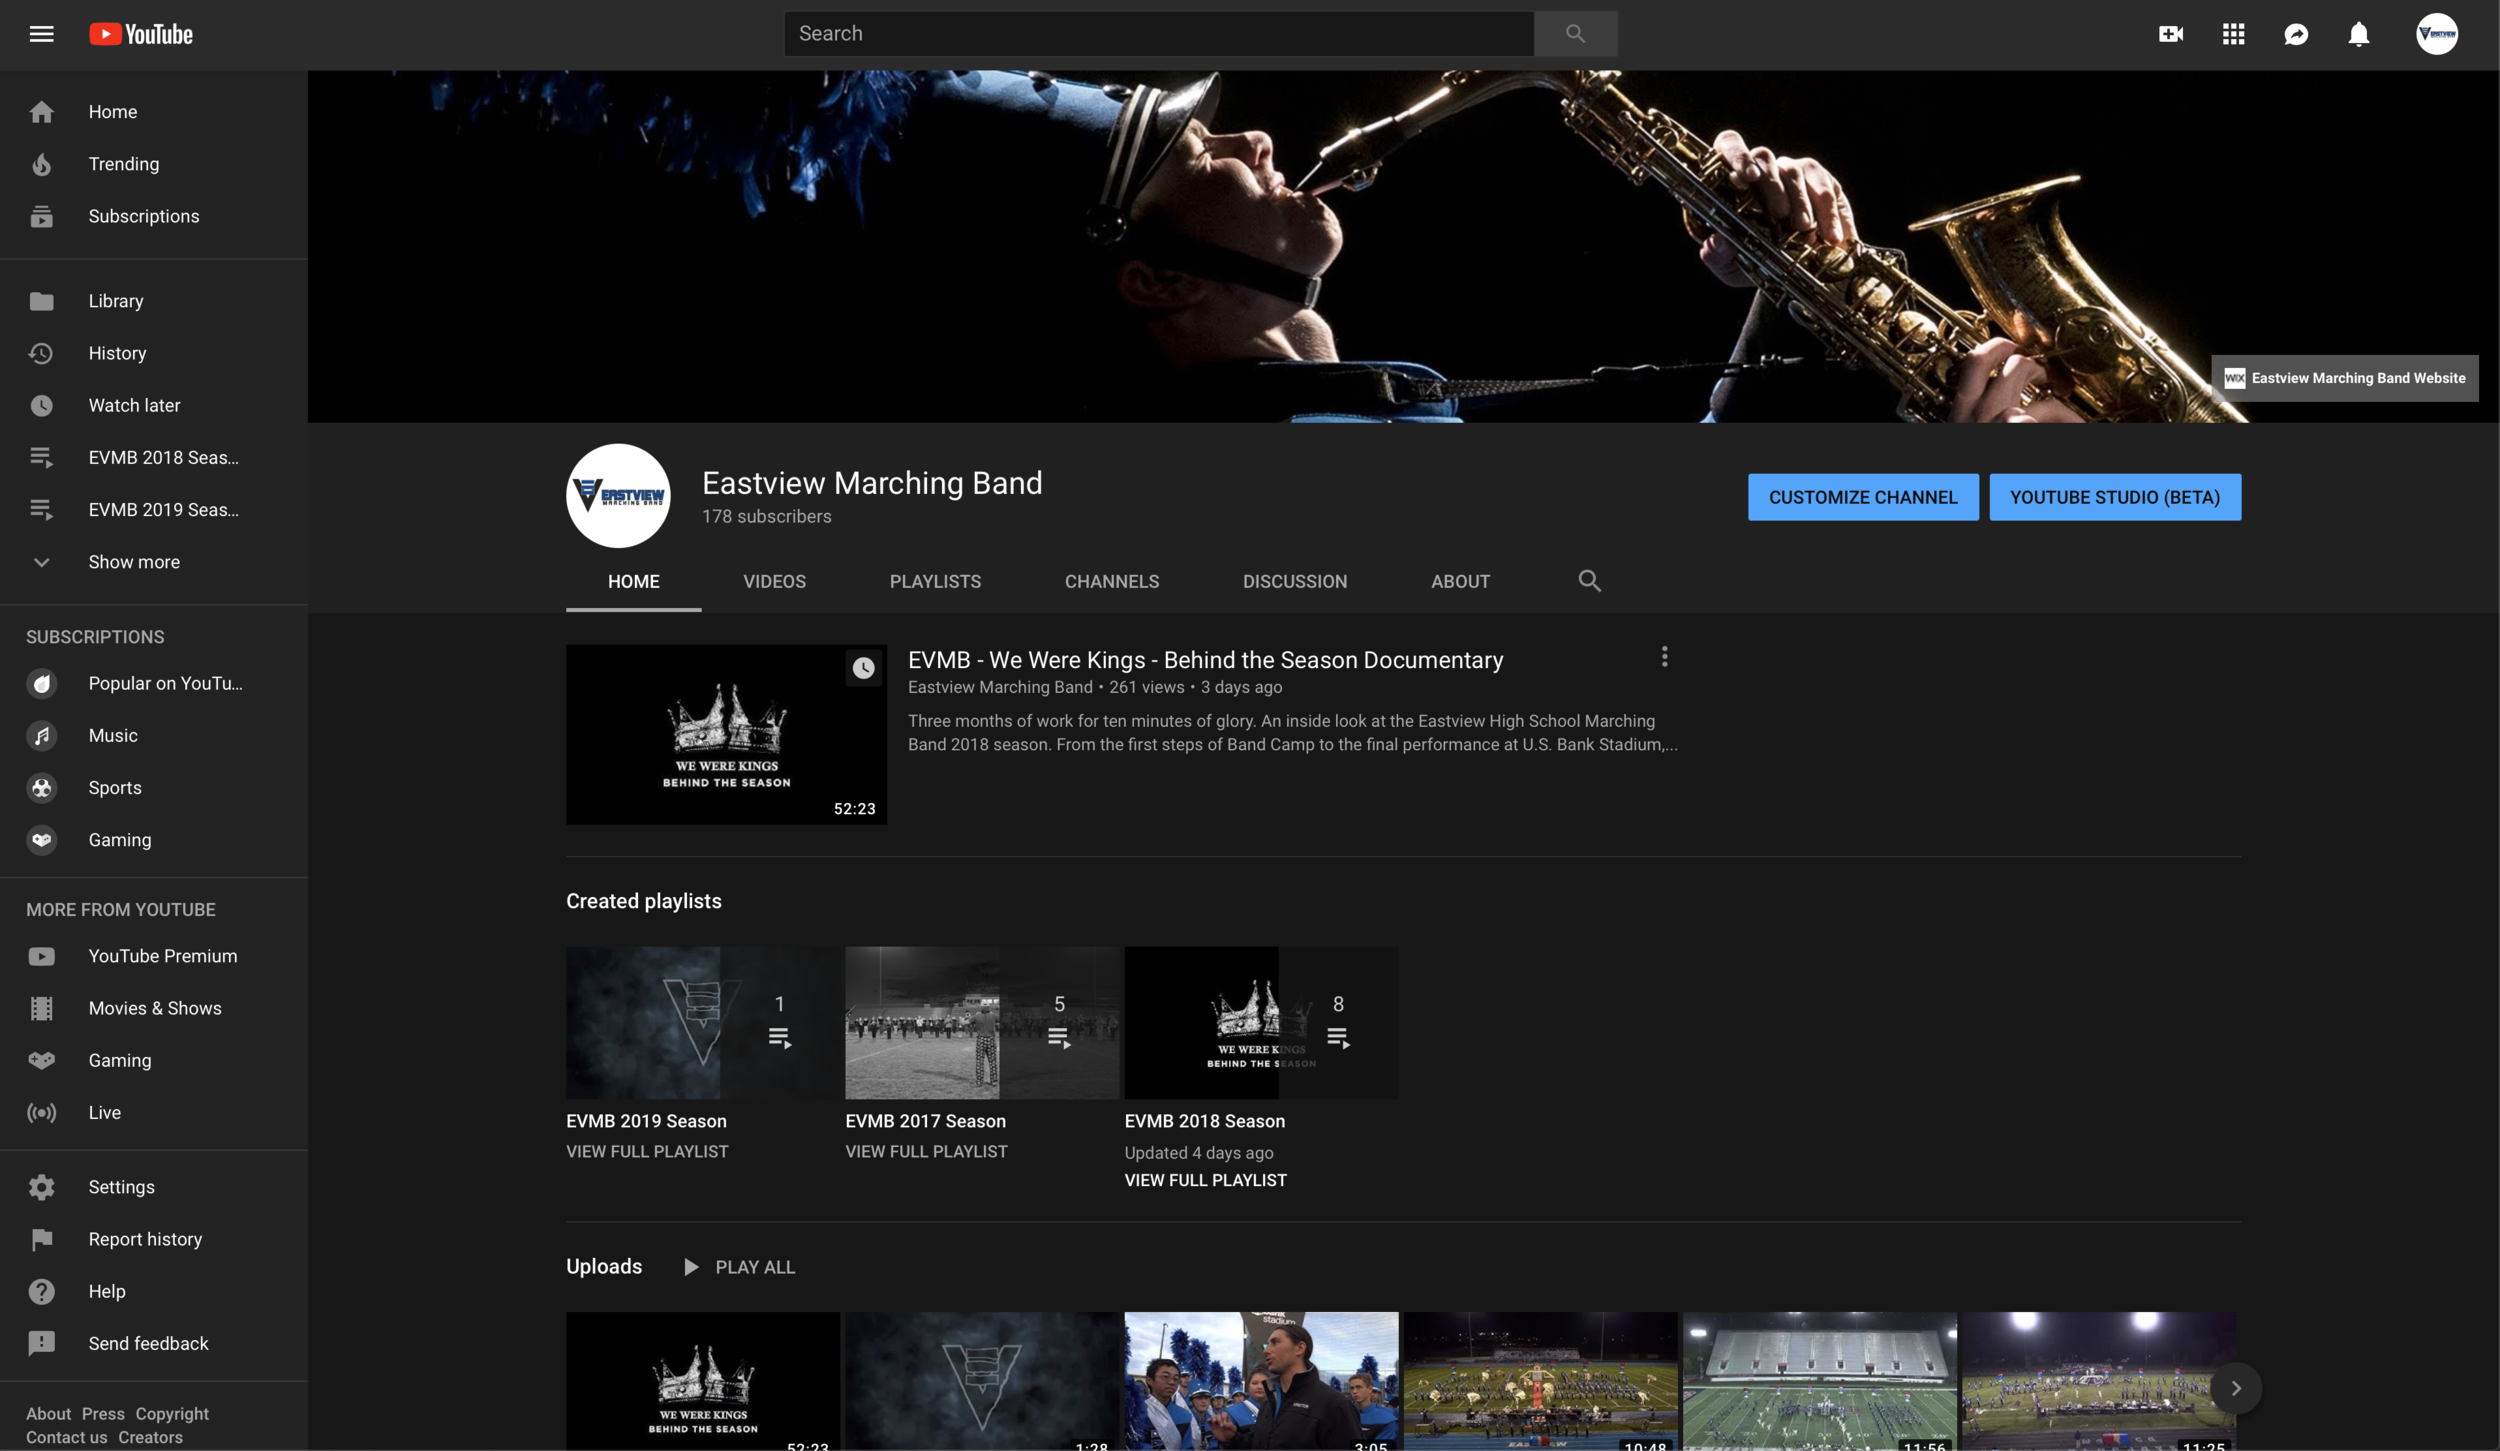 Eastview Marching Band YouTube Channel